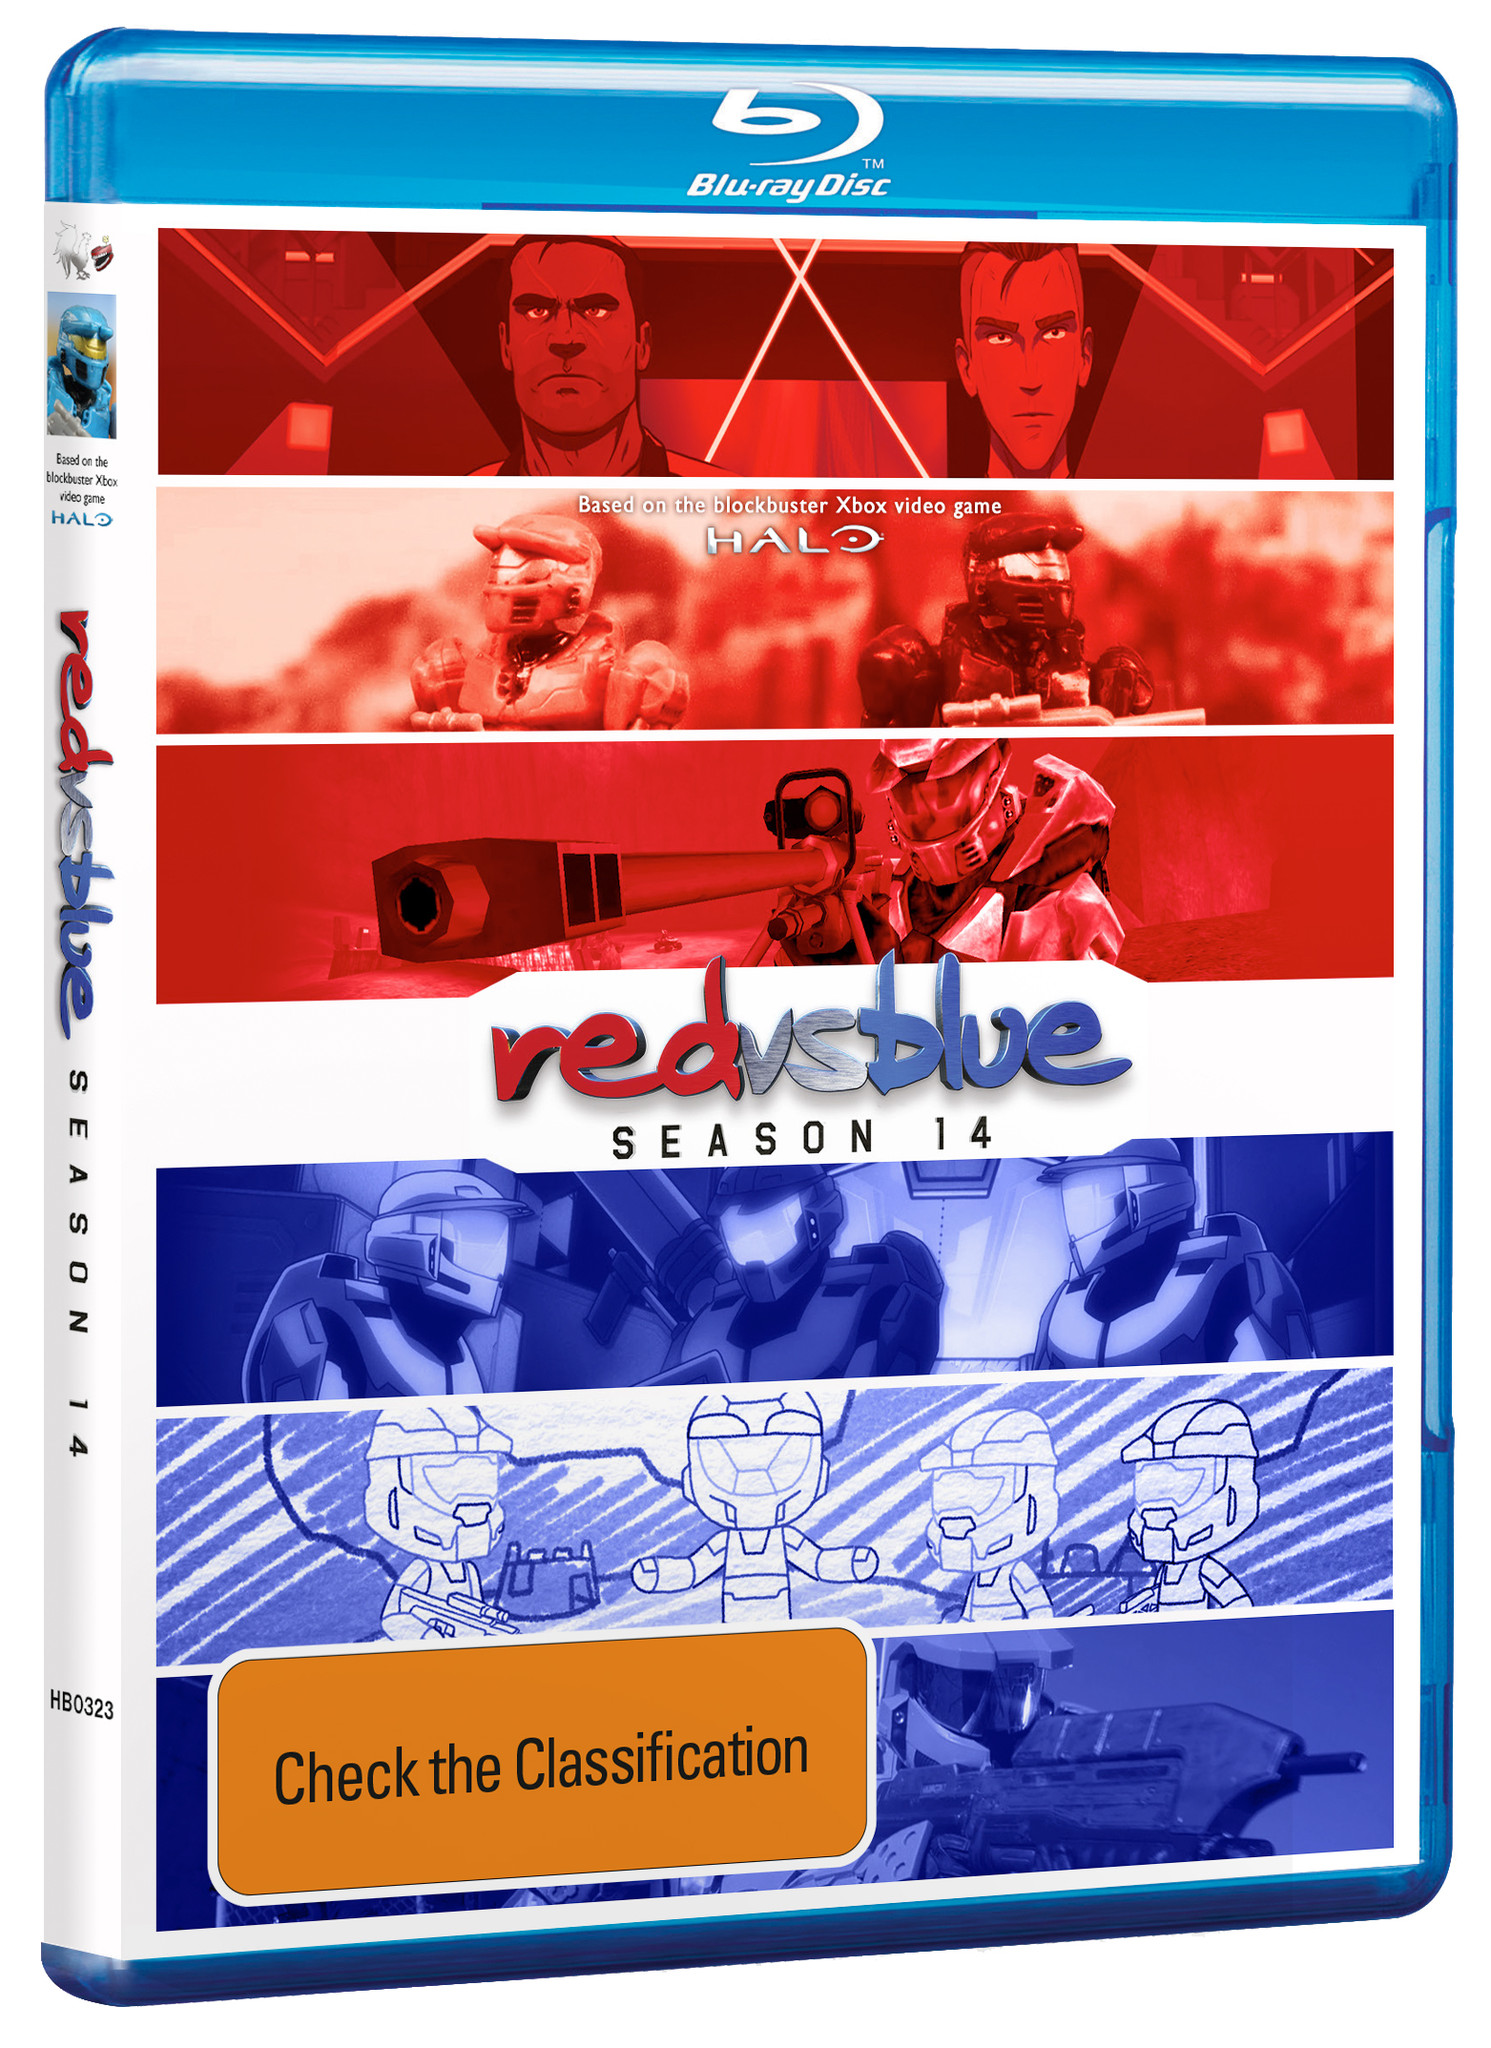 red-vs-blue-season-14-cover-art-01